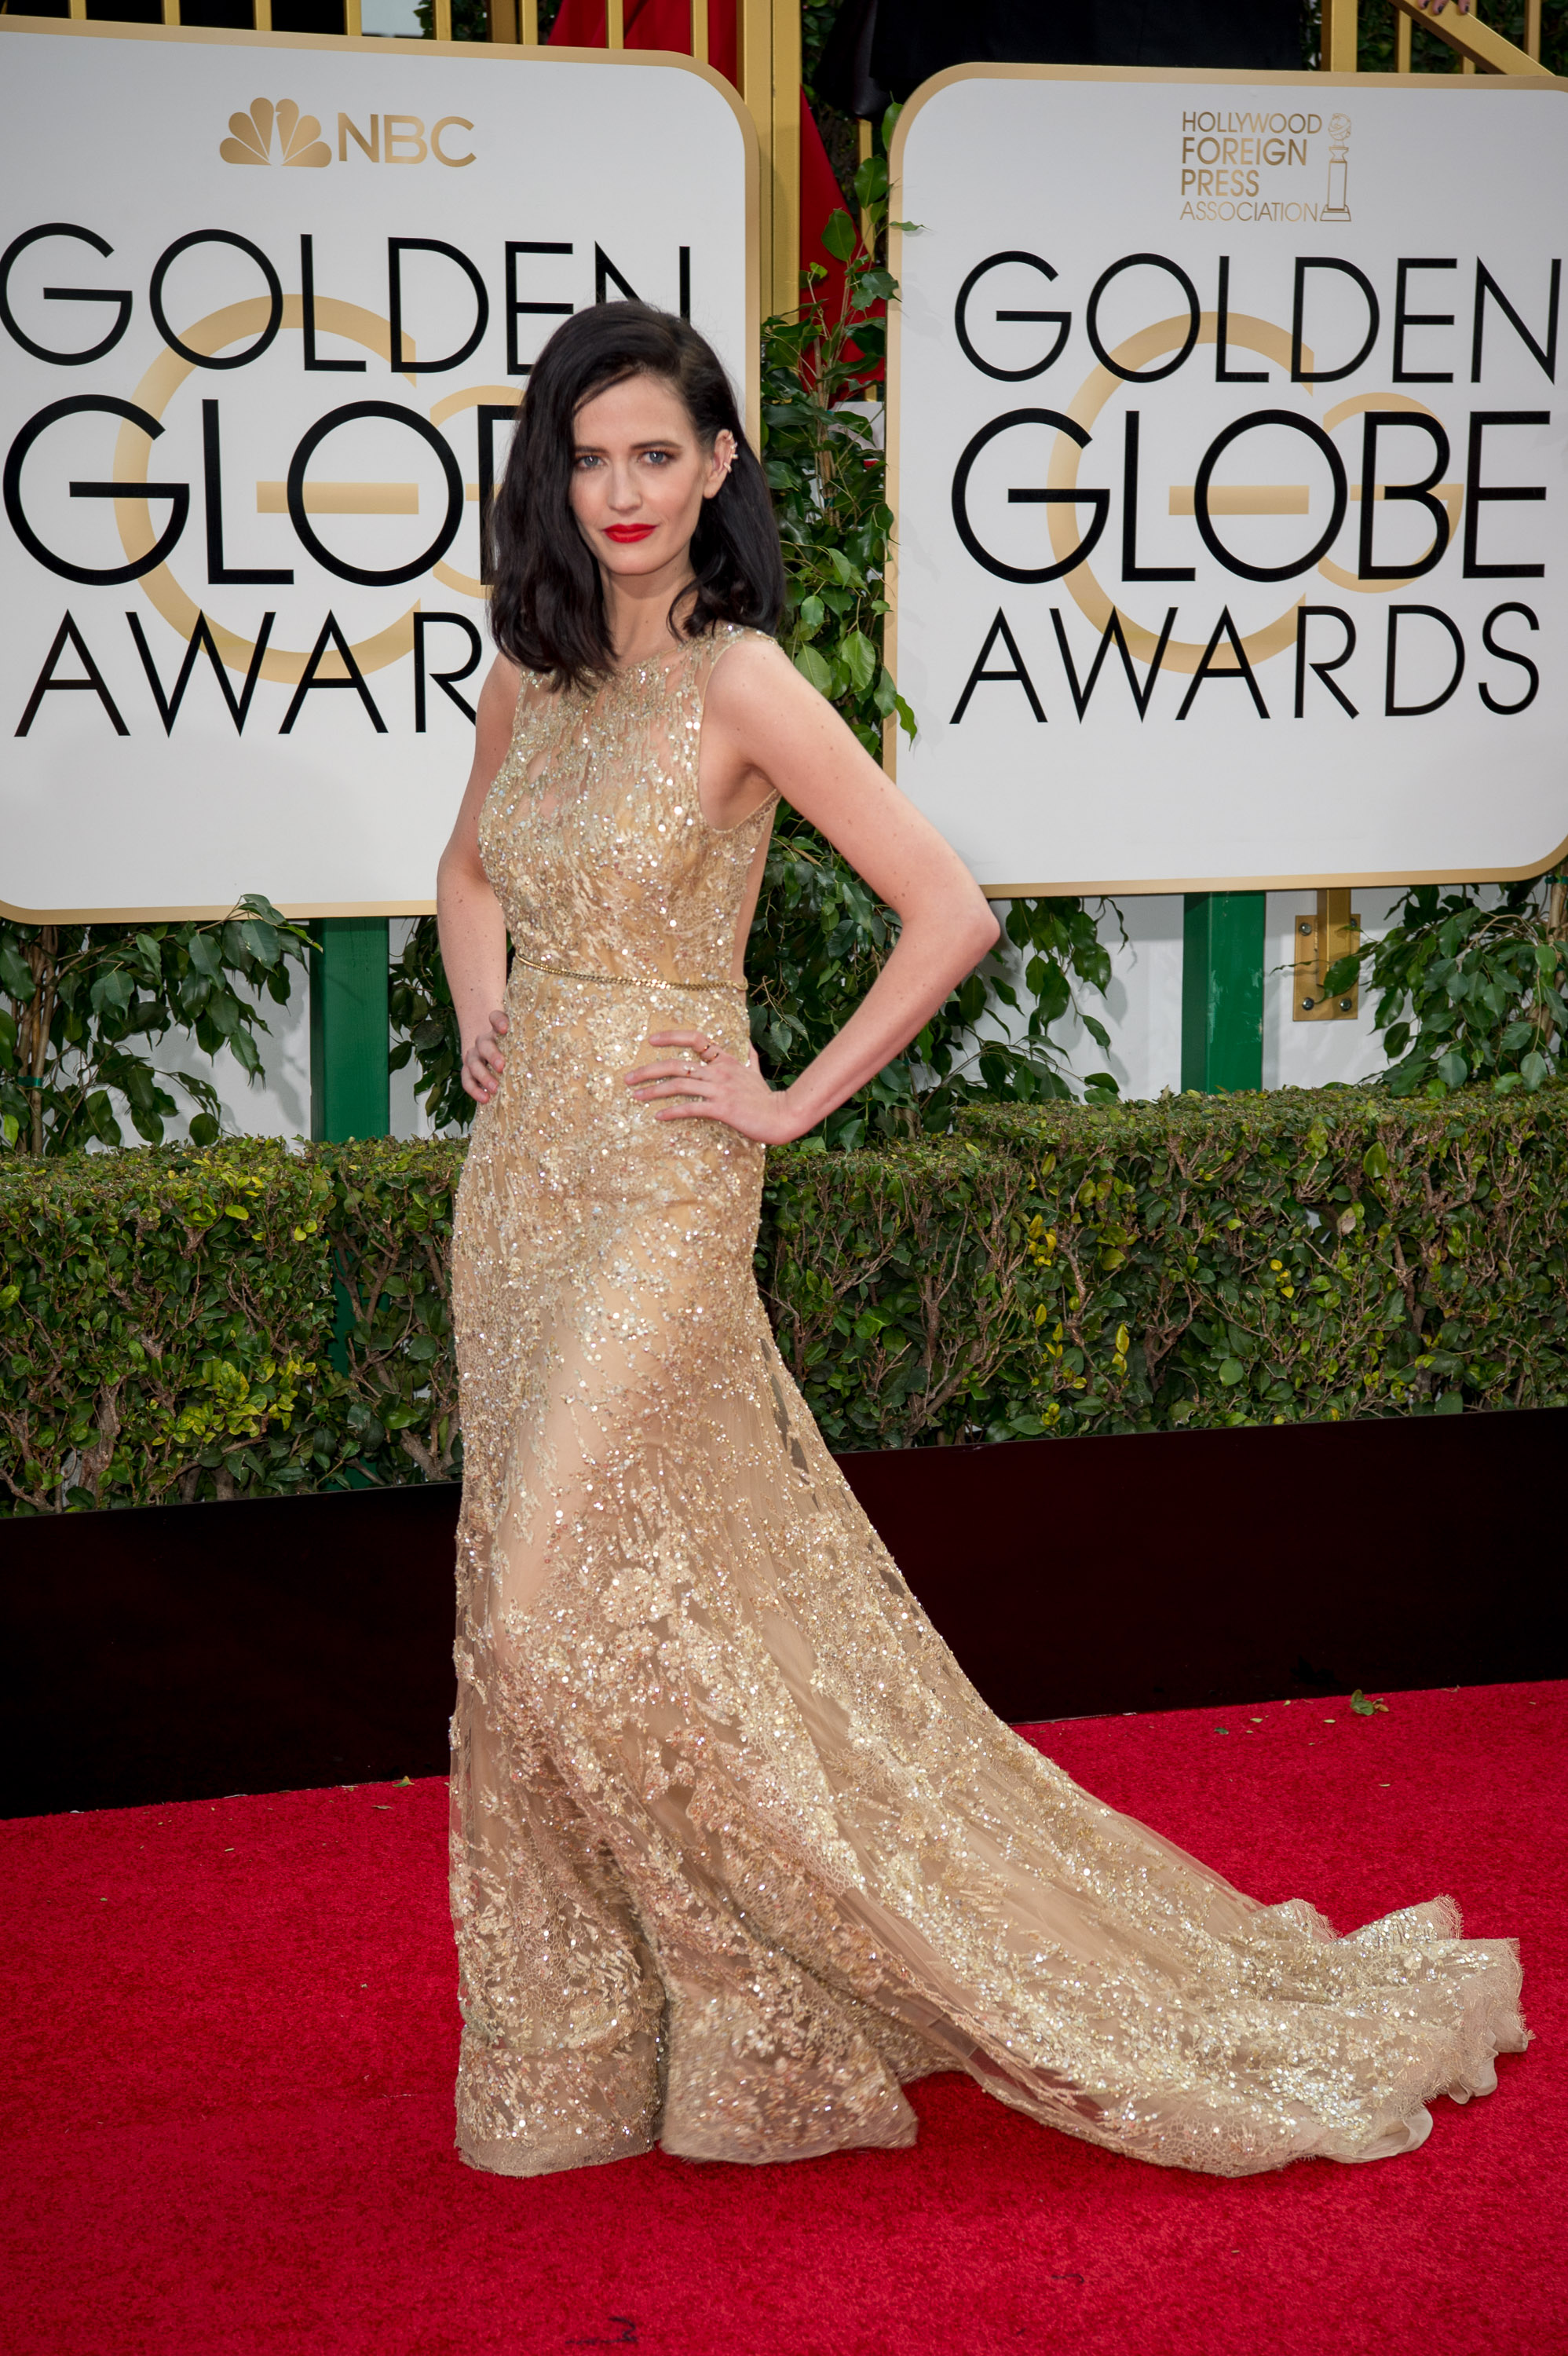 Eva Green attends the 73rd Annual Golden Globes Awards at the Beverly Hilton in Beverly Hills, CA on Sunday, January 10, 2016.